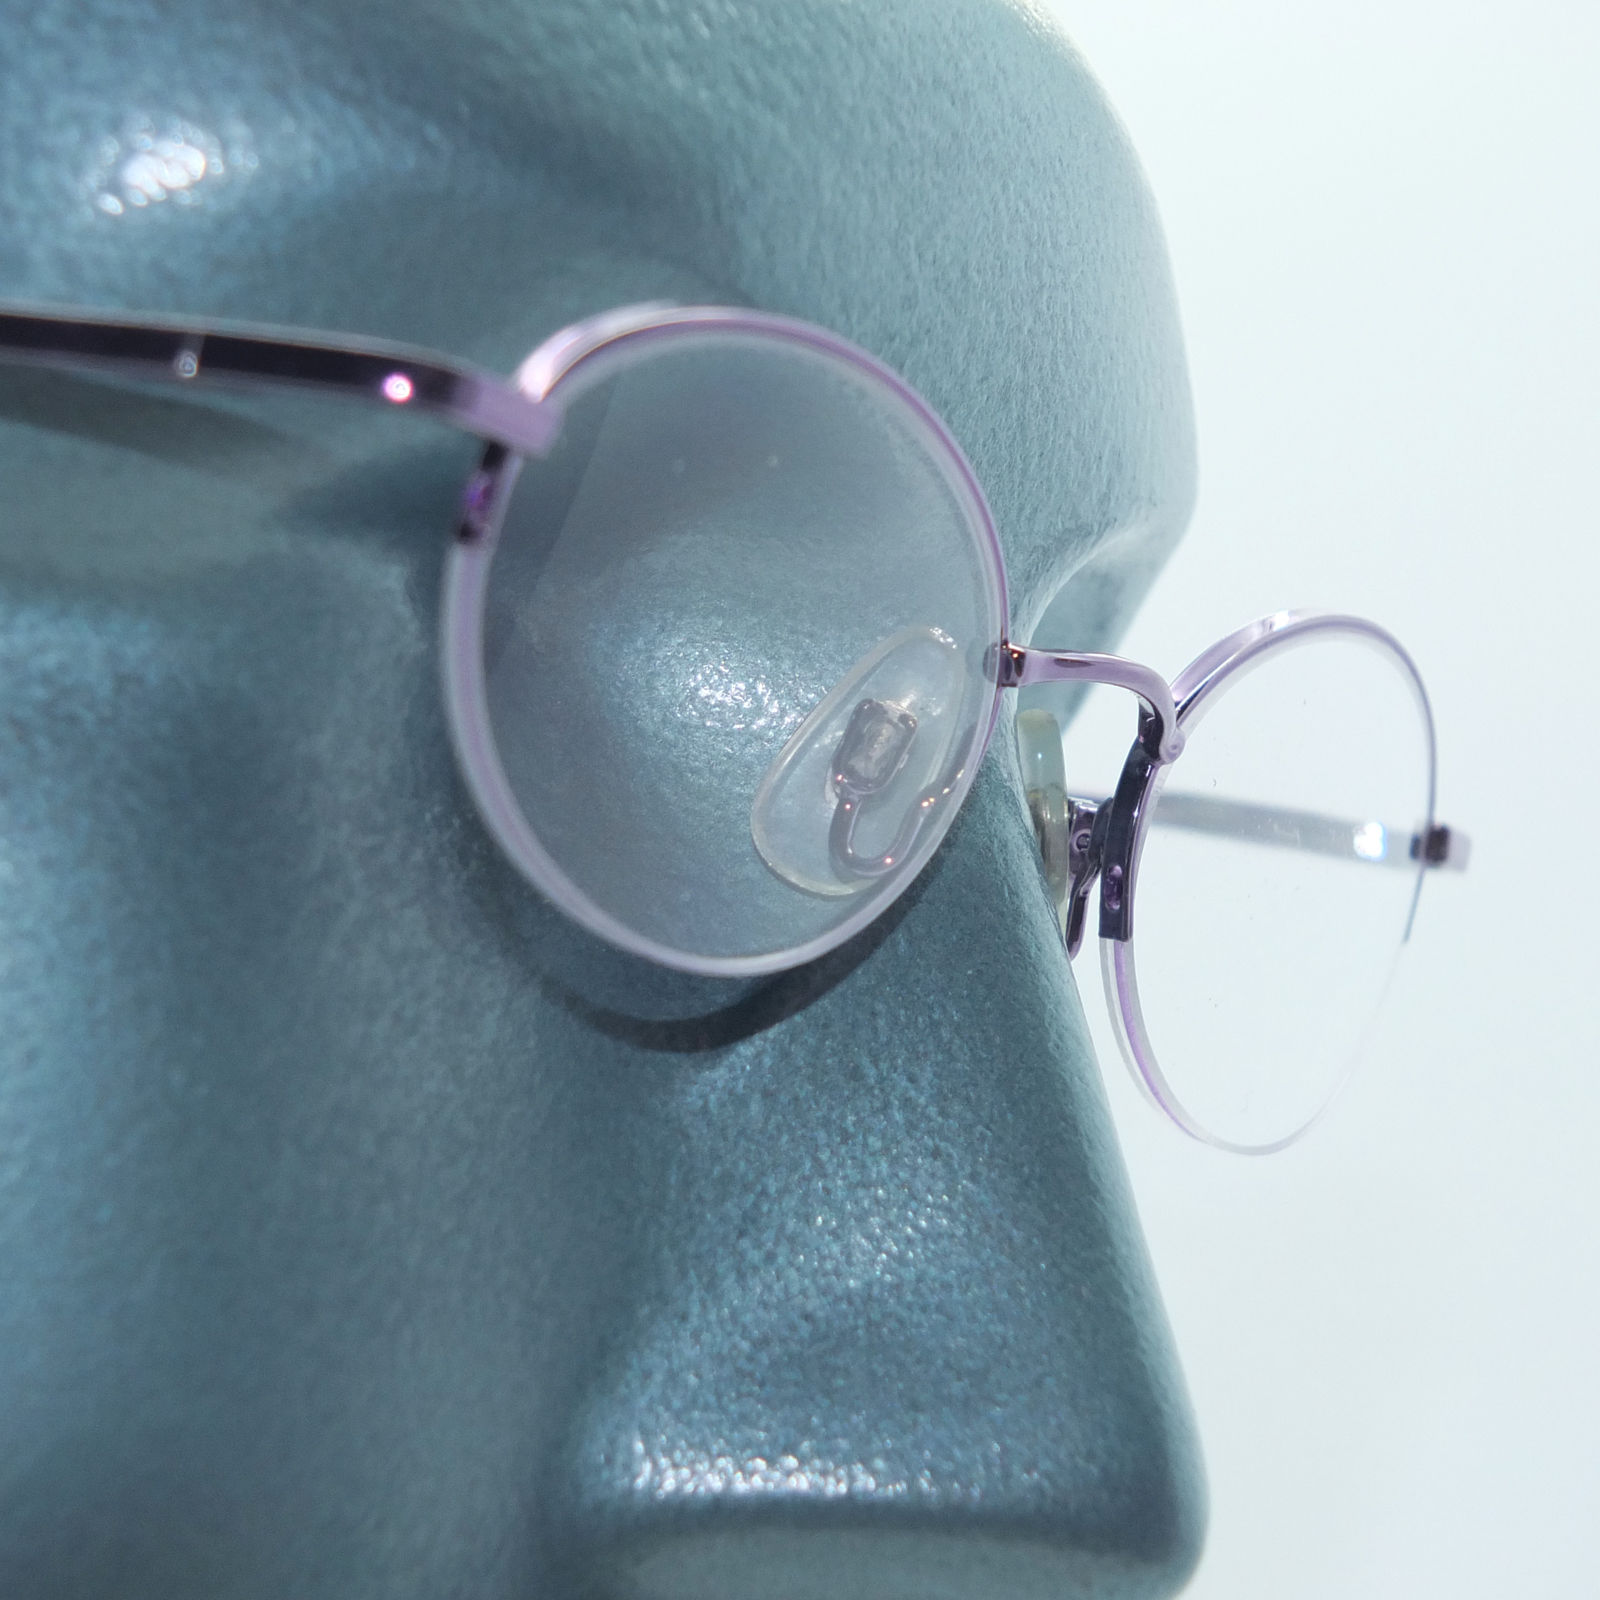 Primary image for Petite Semi Frameless Bottomless Hint Of Tint Amethyst+1.00 Reading Glasses